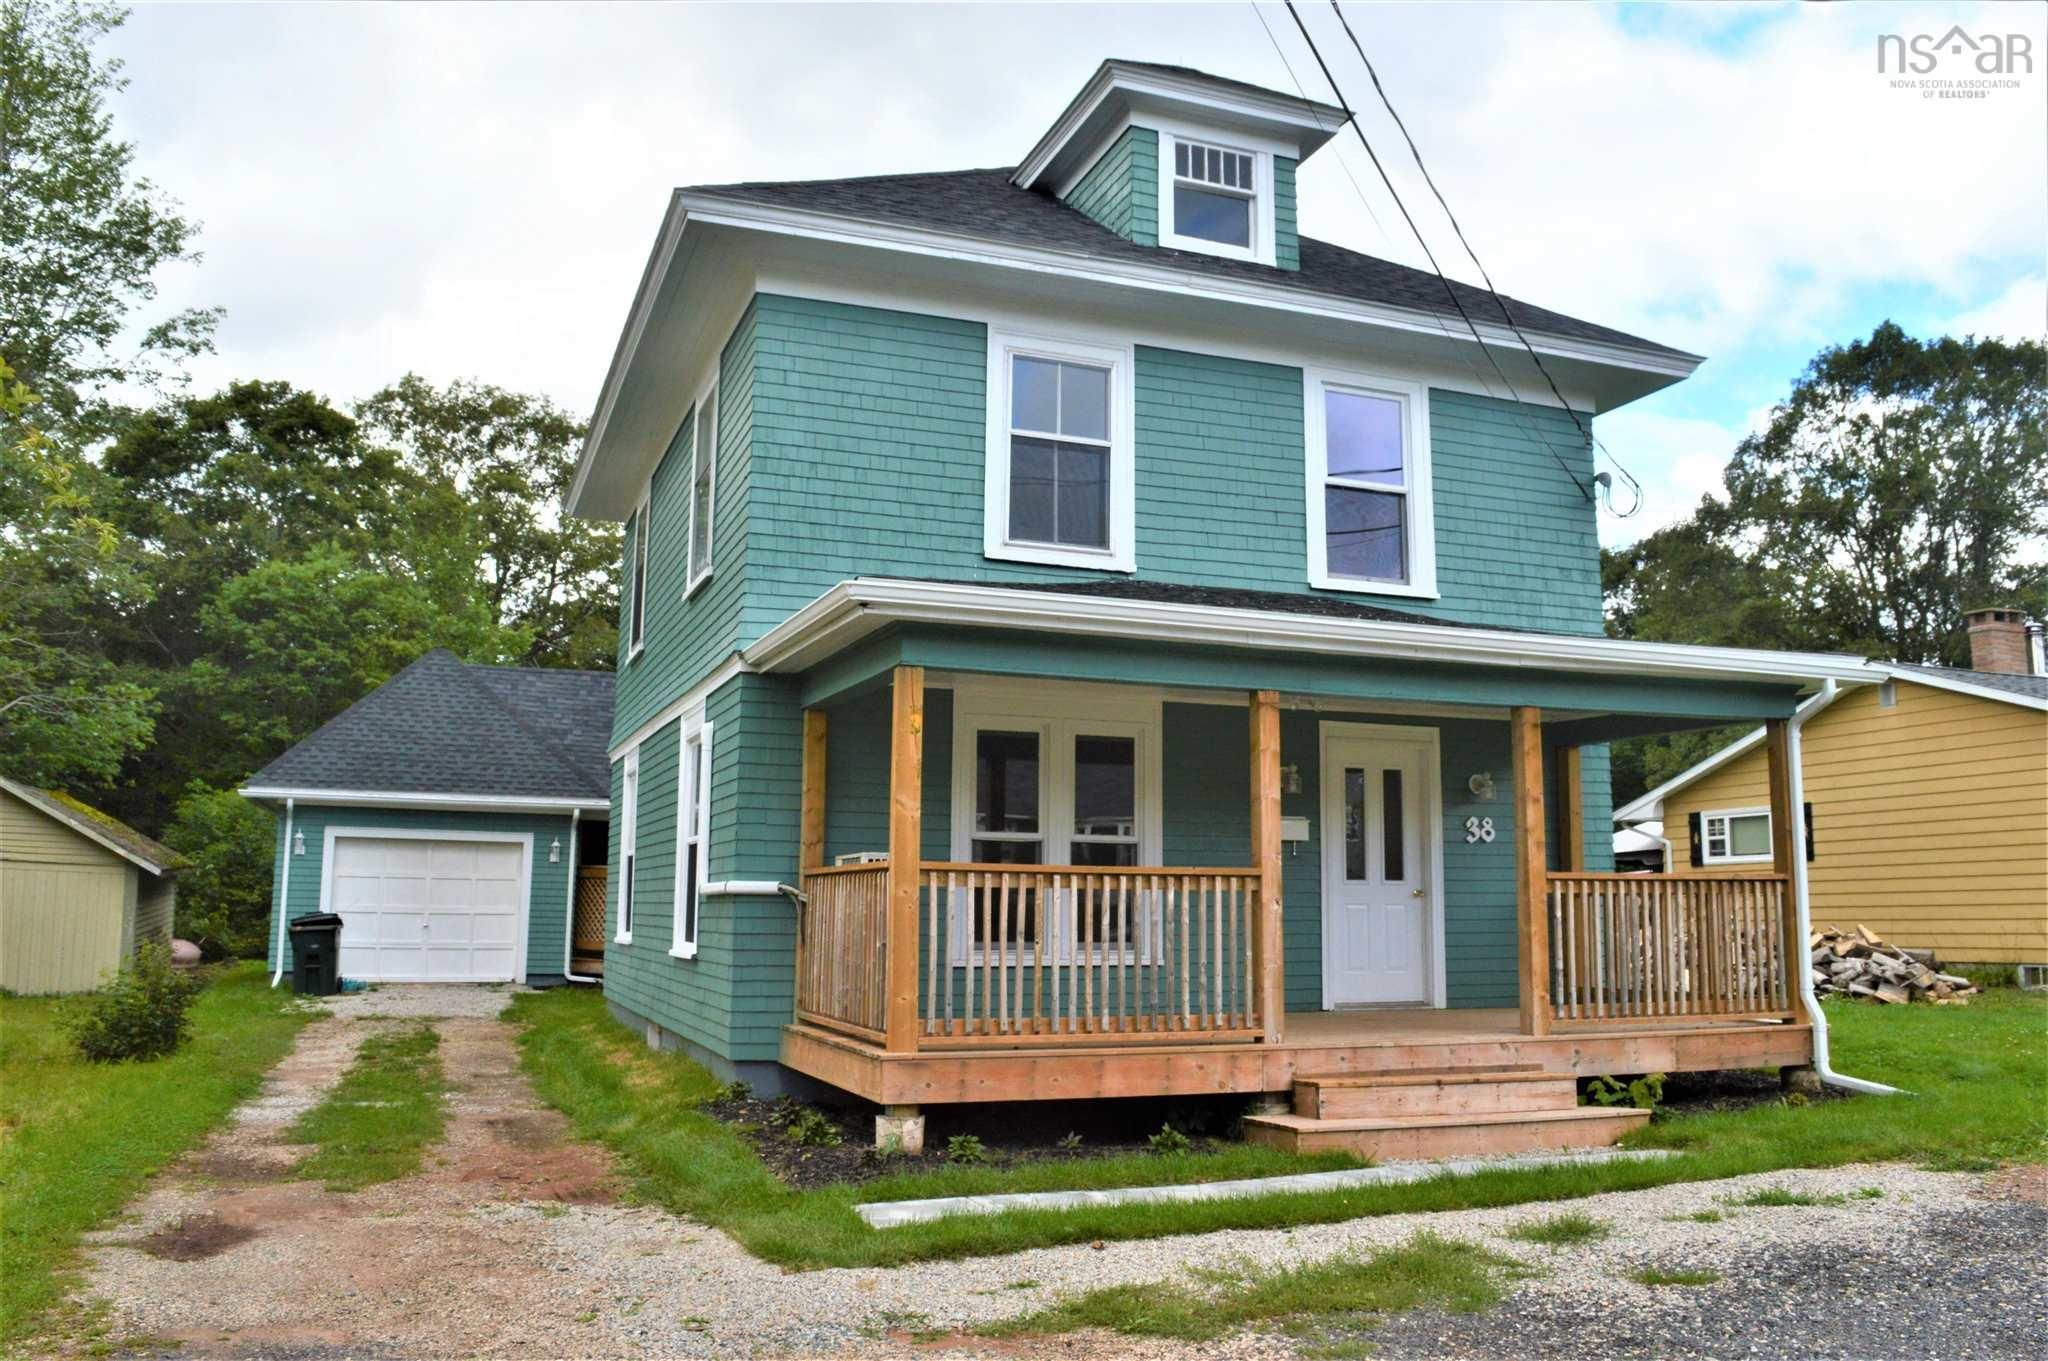 Main Photo: 38 Nichols Avenue in Kentville: 404-Kings County Residential for sale (Annapolis Valley)  : MLS®# 202122858